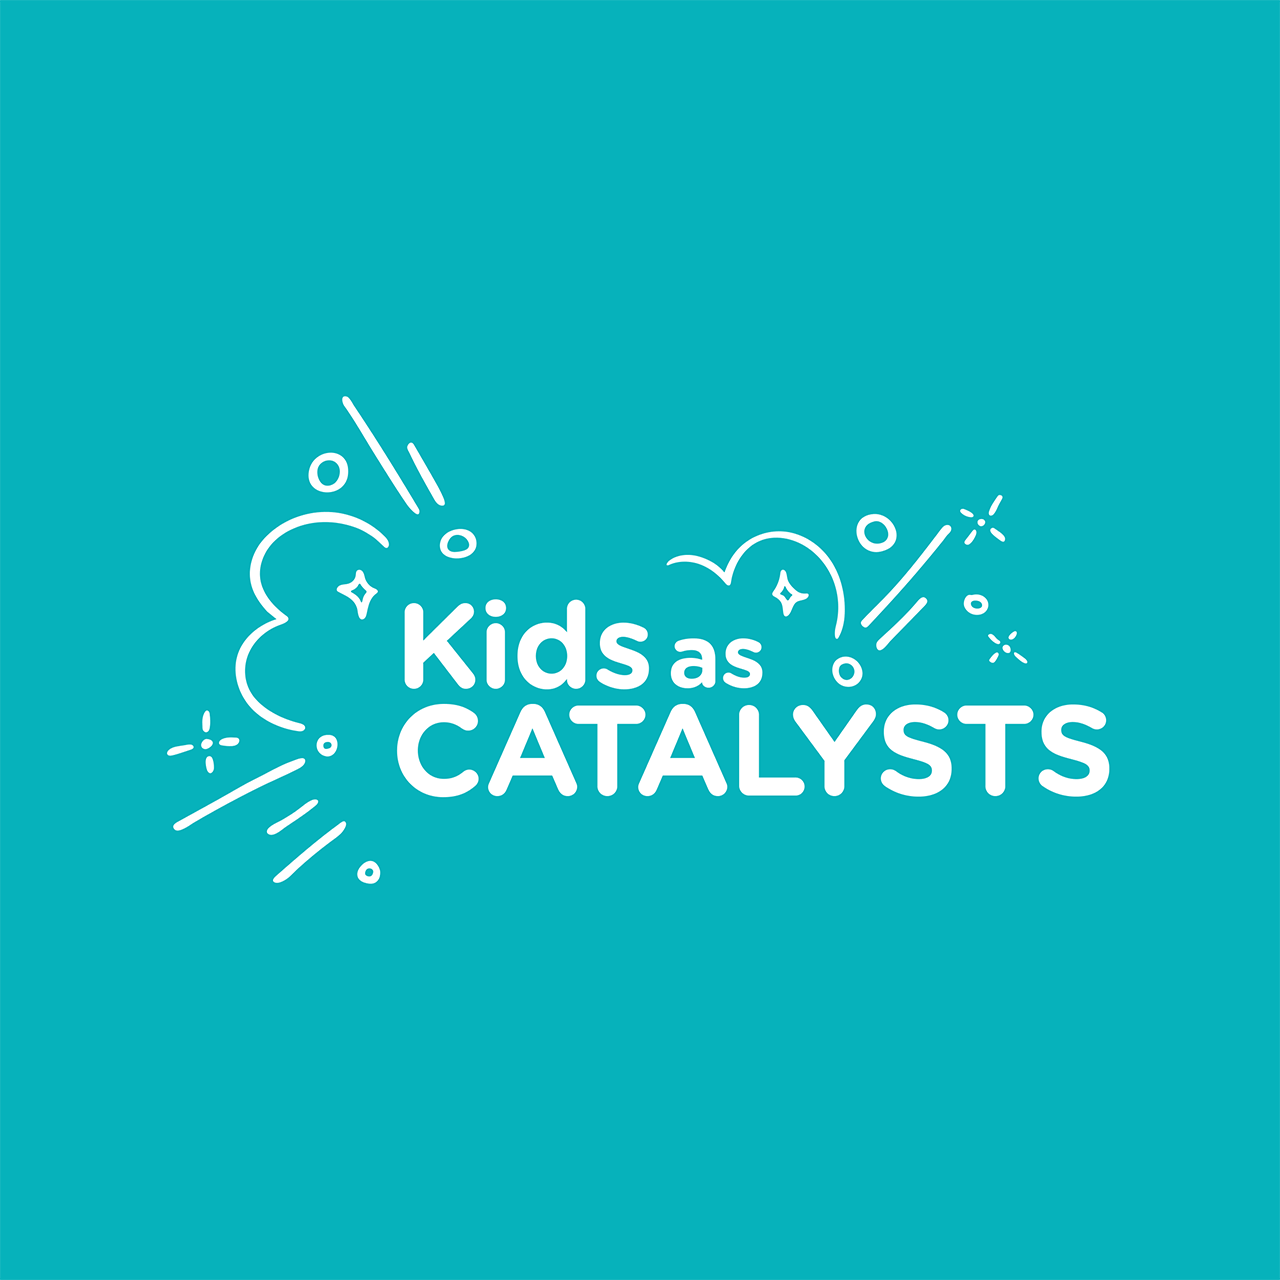 Kids as catalysts logo on a blue background